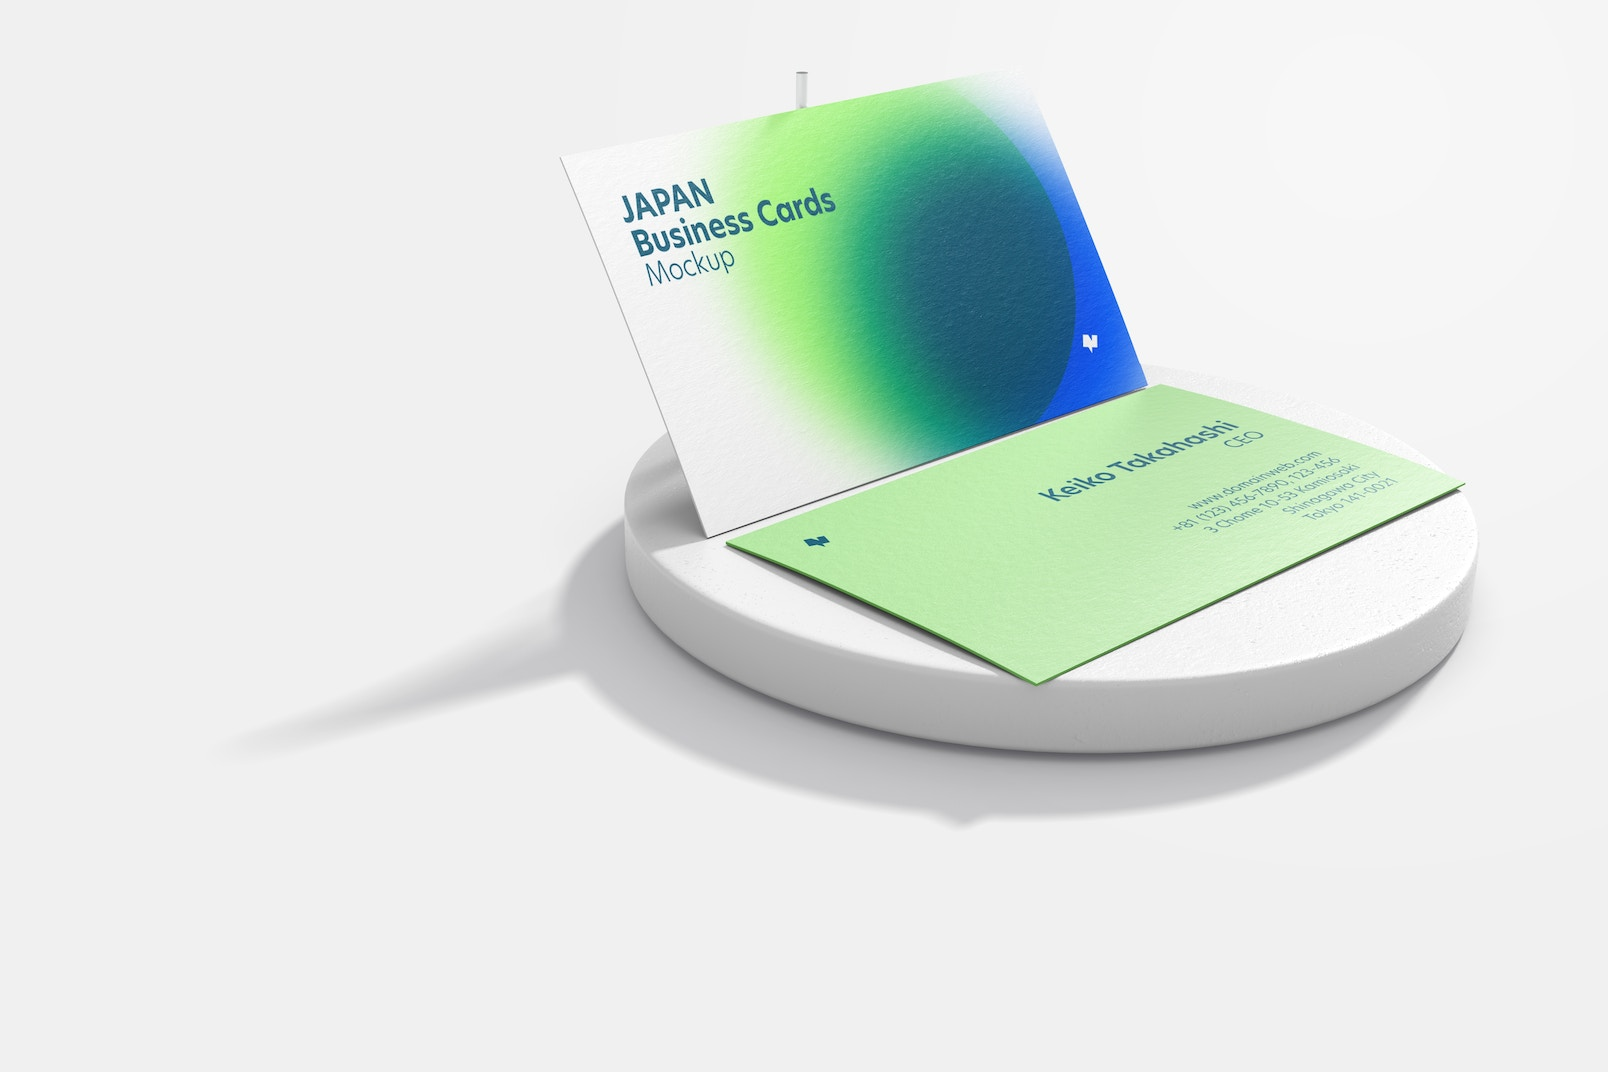 Japan Landscape Business Cards with Round Stone Mockup